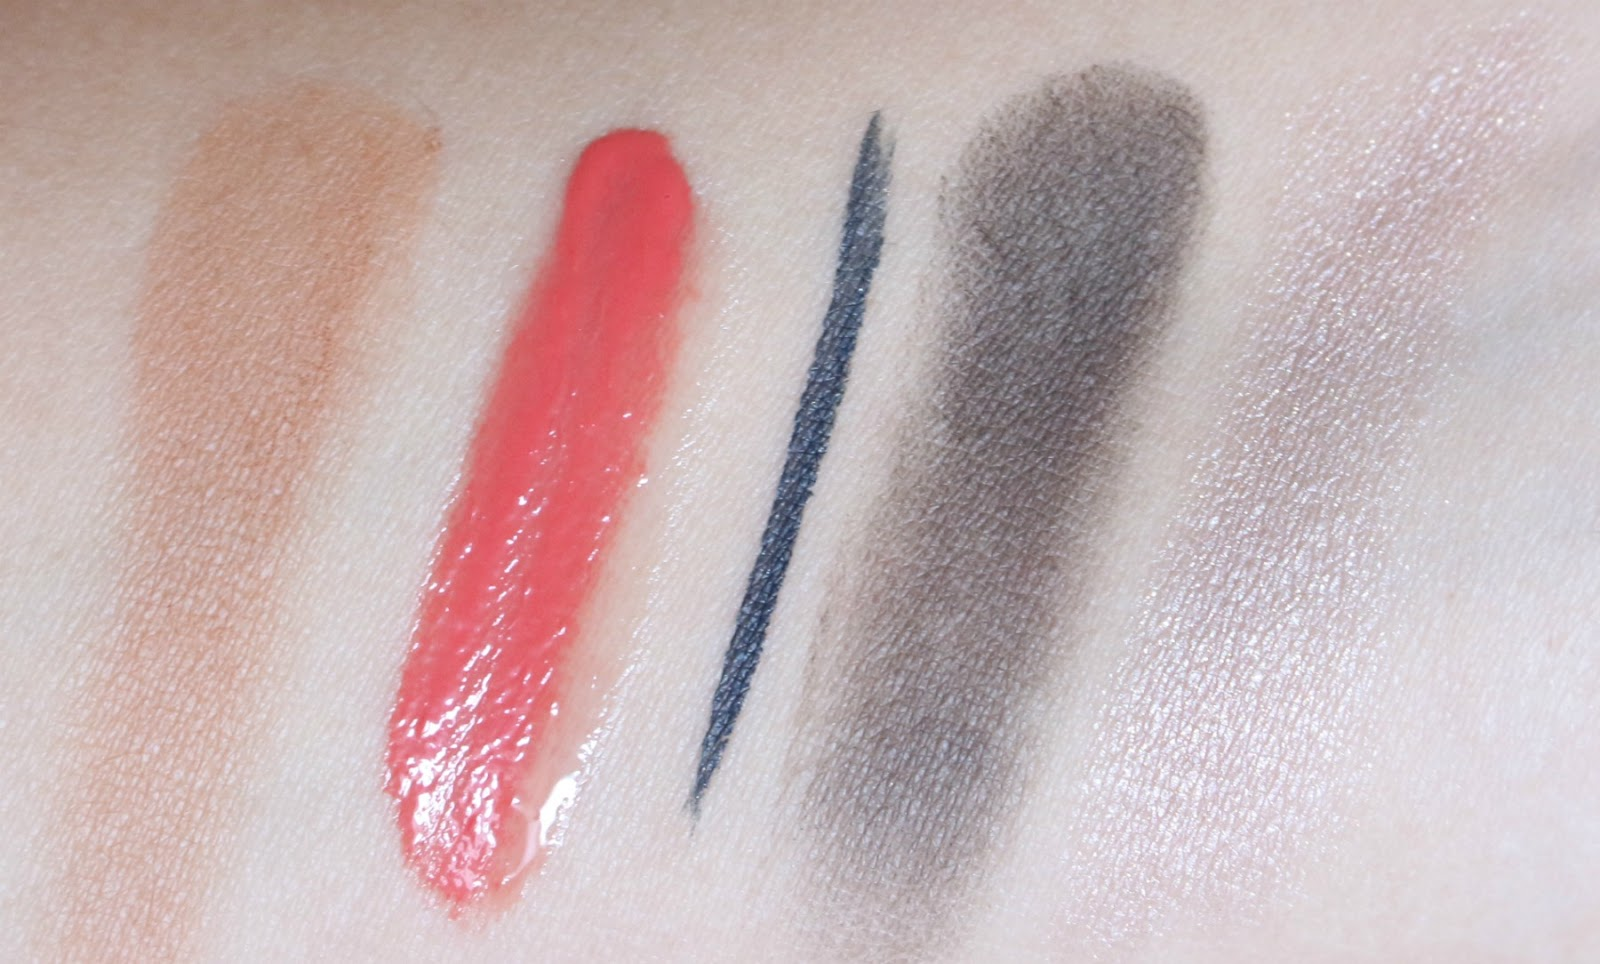 Sothys Désert Chic swatches